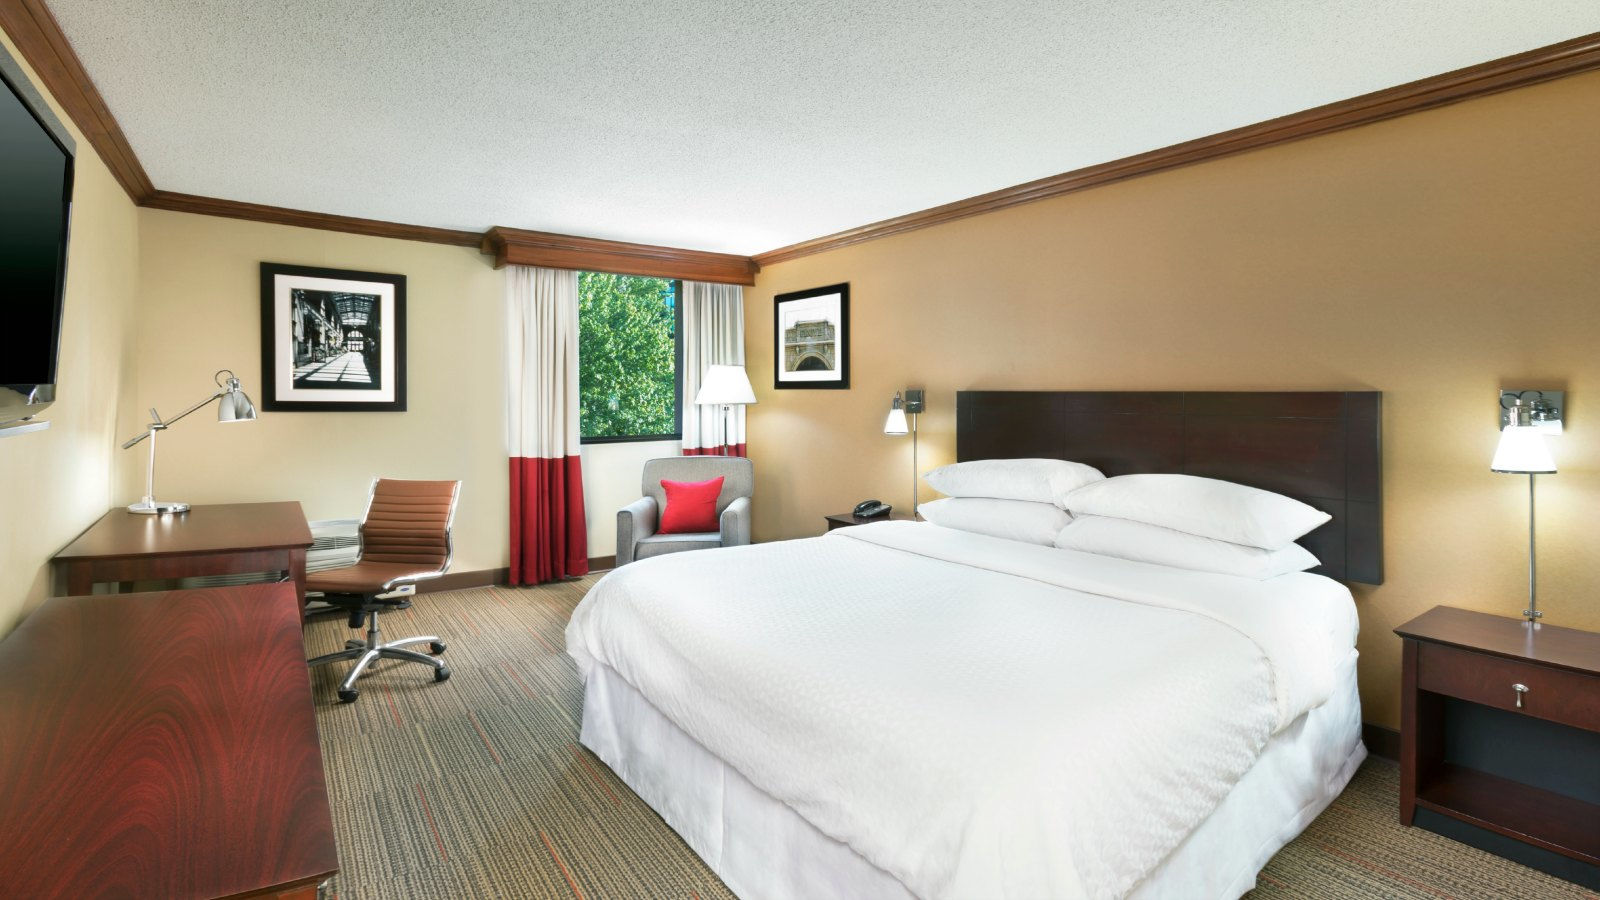 Downtown Asheville Accommodations - King Guest Room